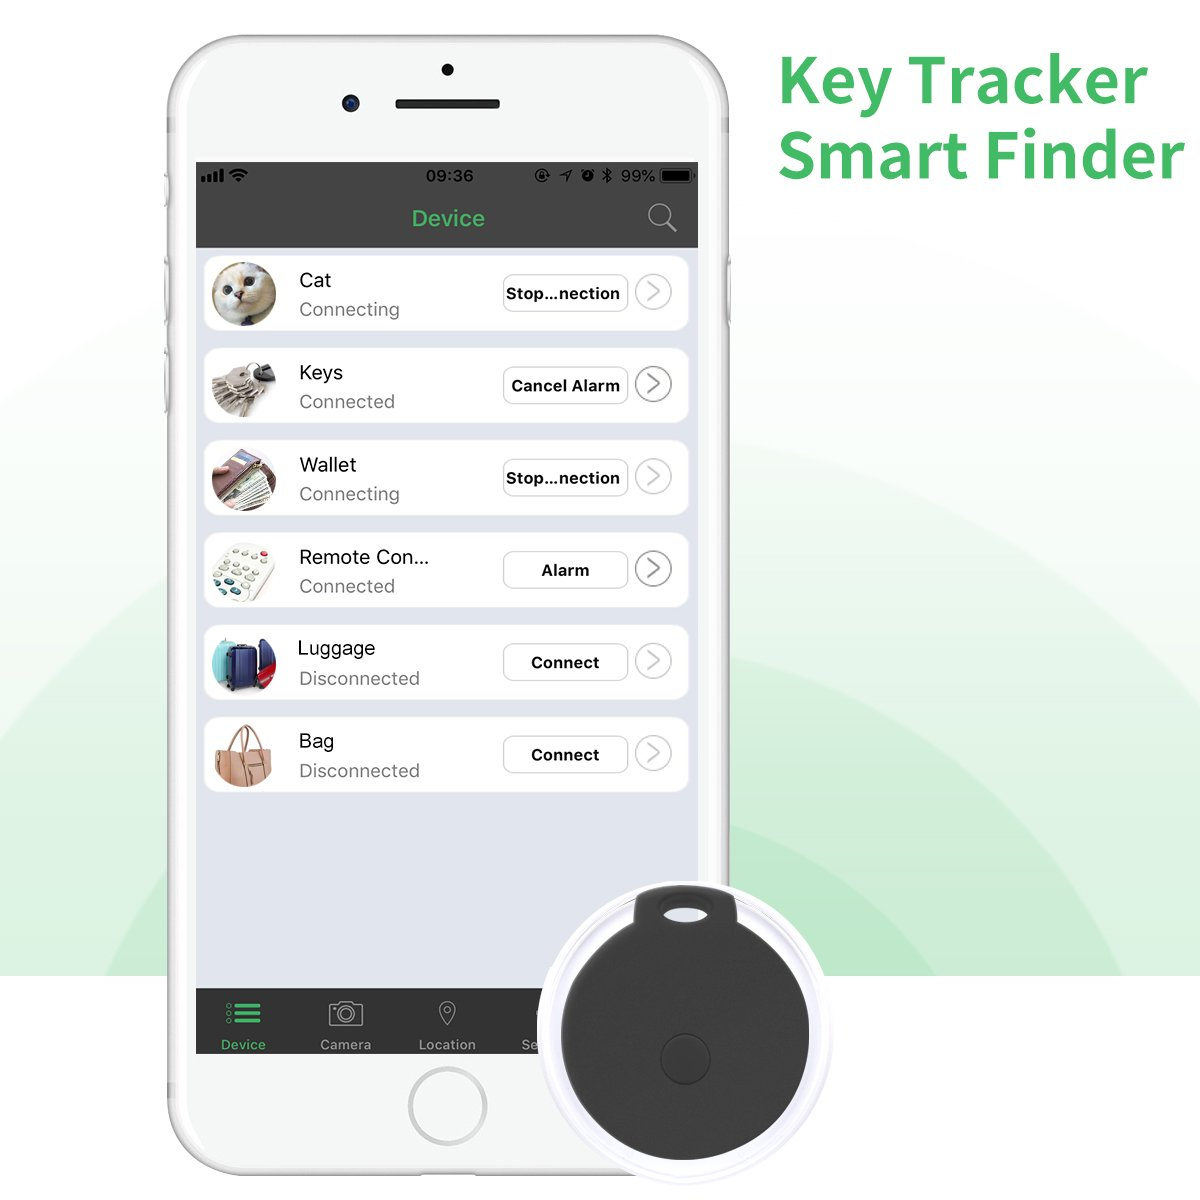 Gps Phone Locator >> Key Finder Cc Show Wireless Gps Phone Locator Smart Wallet Tracker Anything Anti Lost Alarm With Selfie Shutter Remote Control For Ios Android App